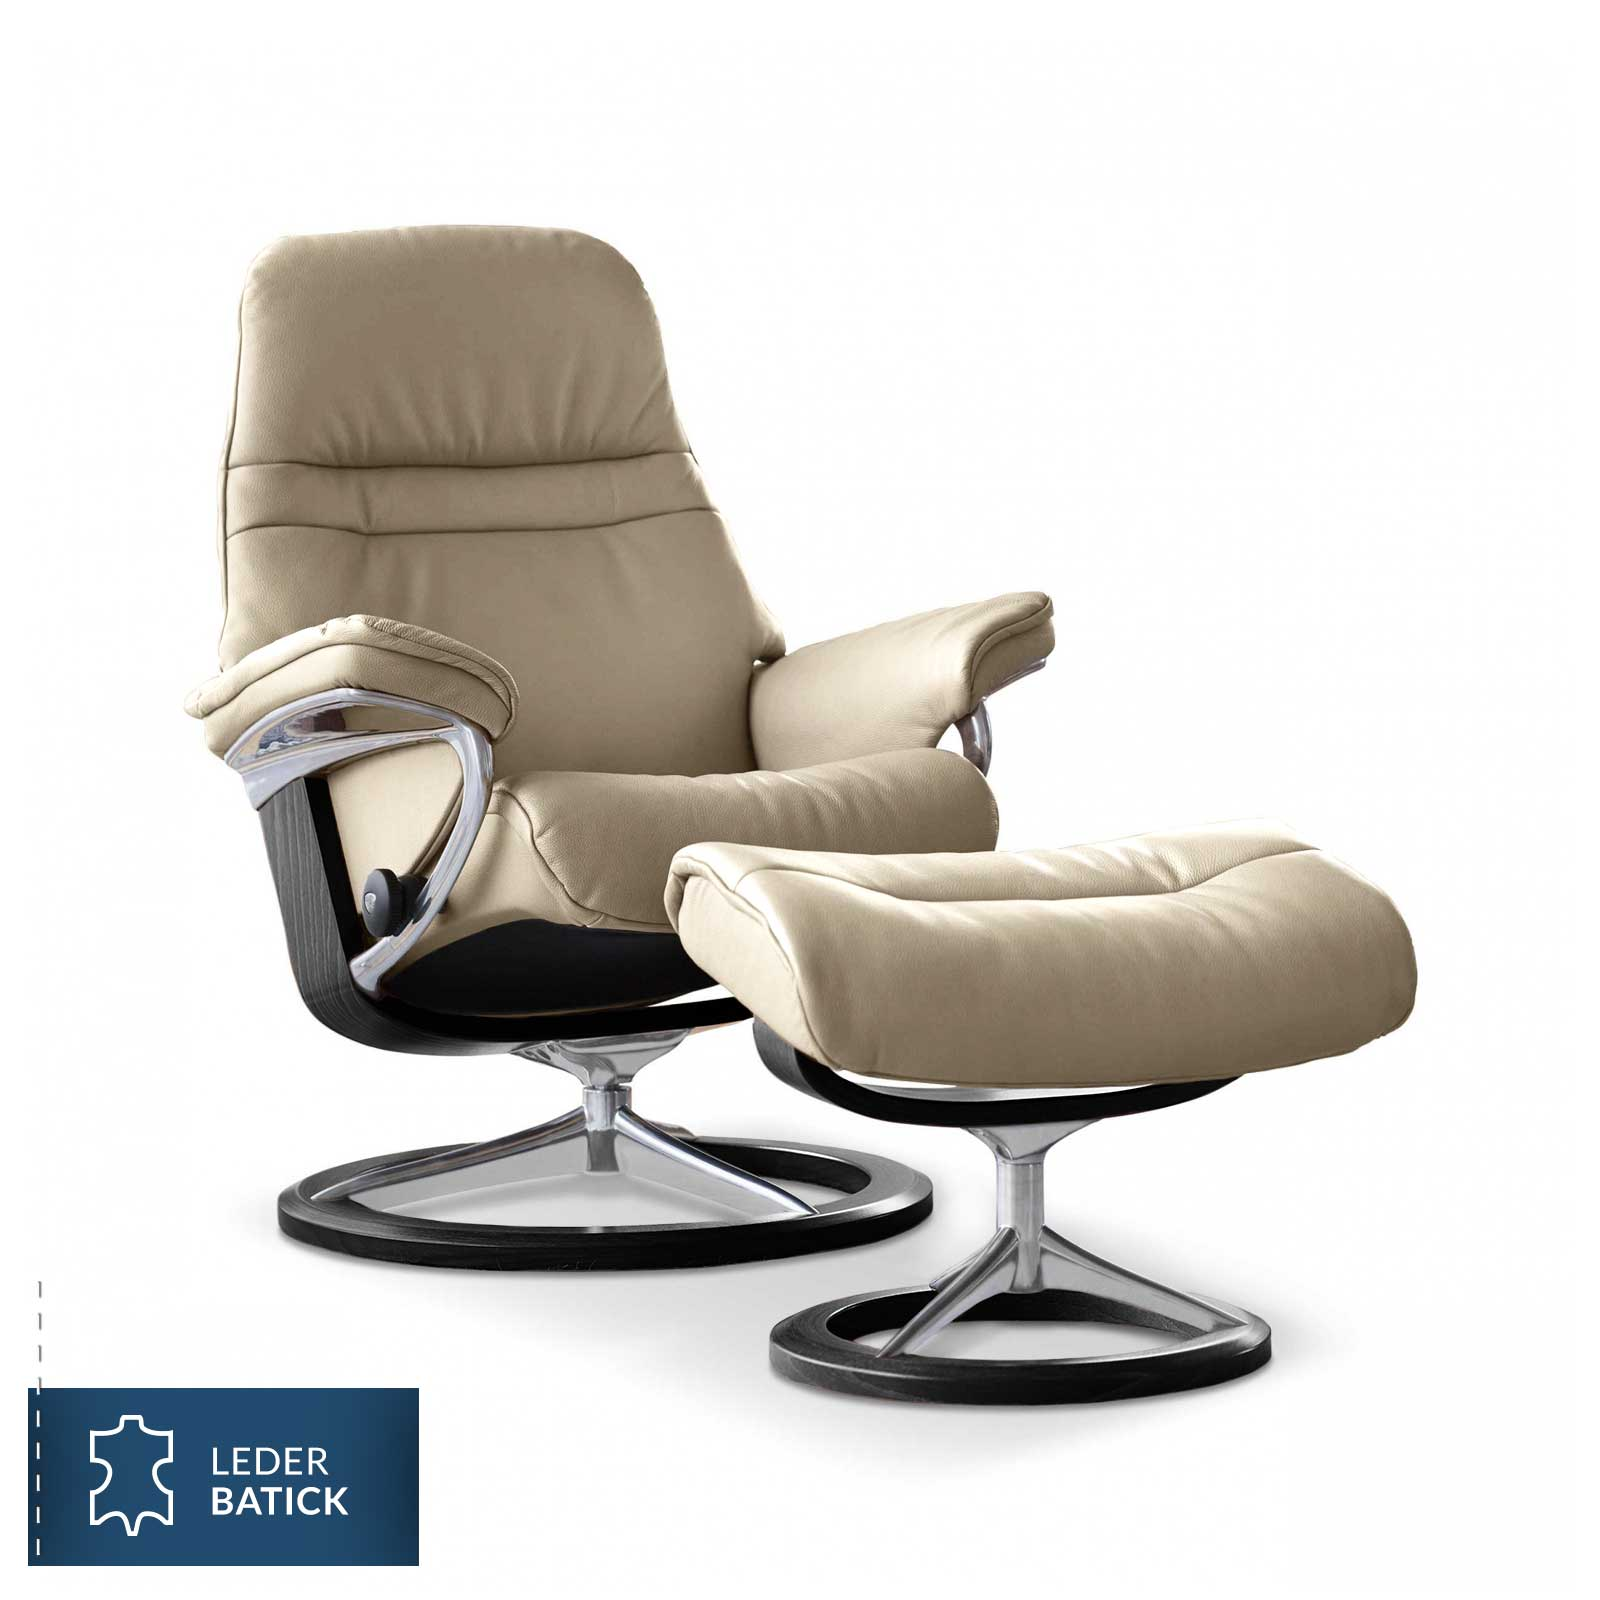 stressless sessel sunrise signature l batick cream stressless. Black Bedroom Furniture Sets. Home Design Ideas